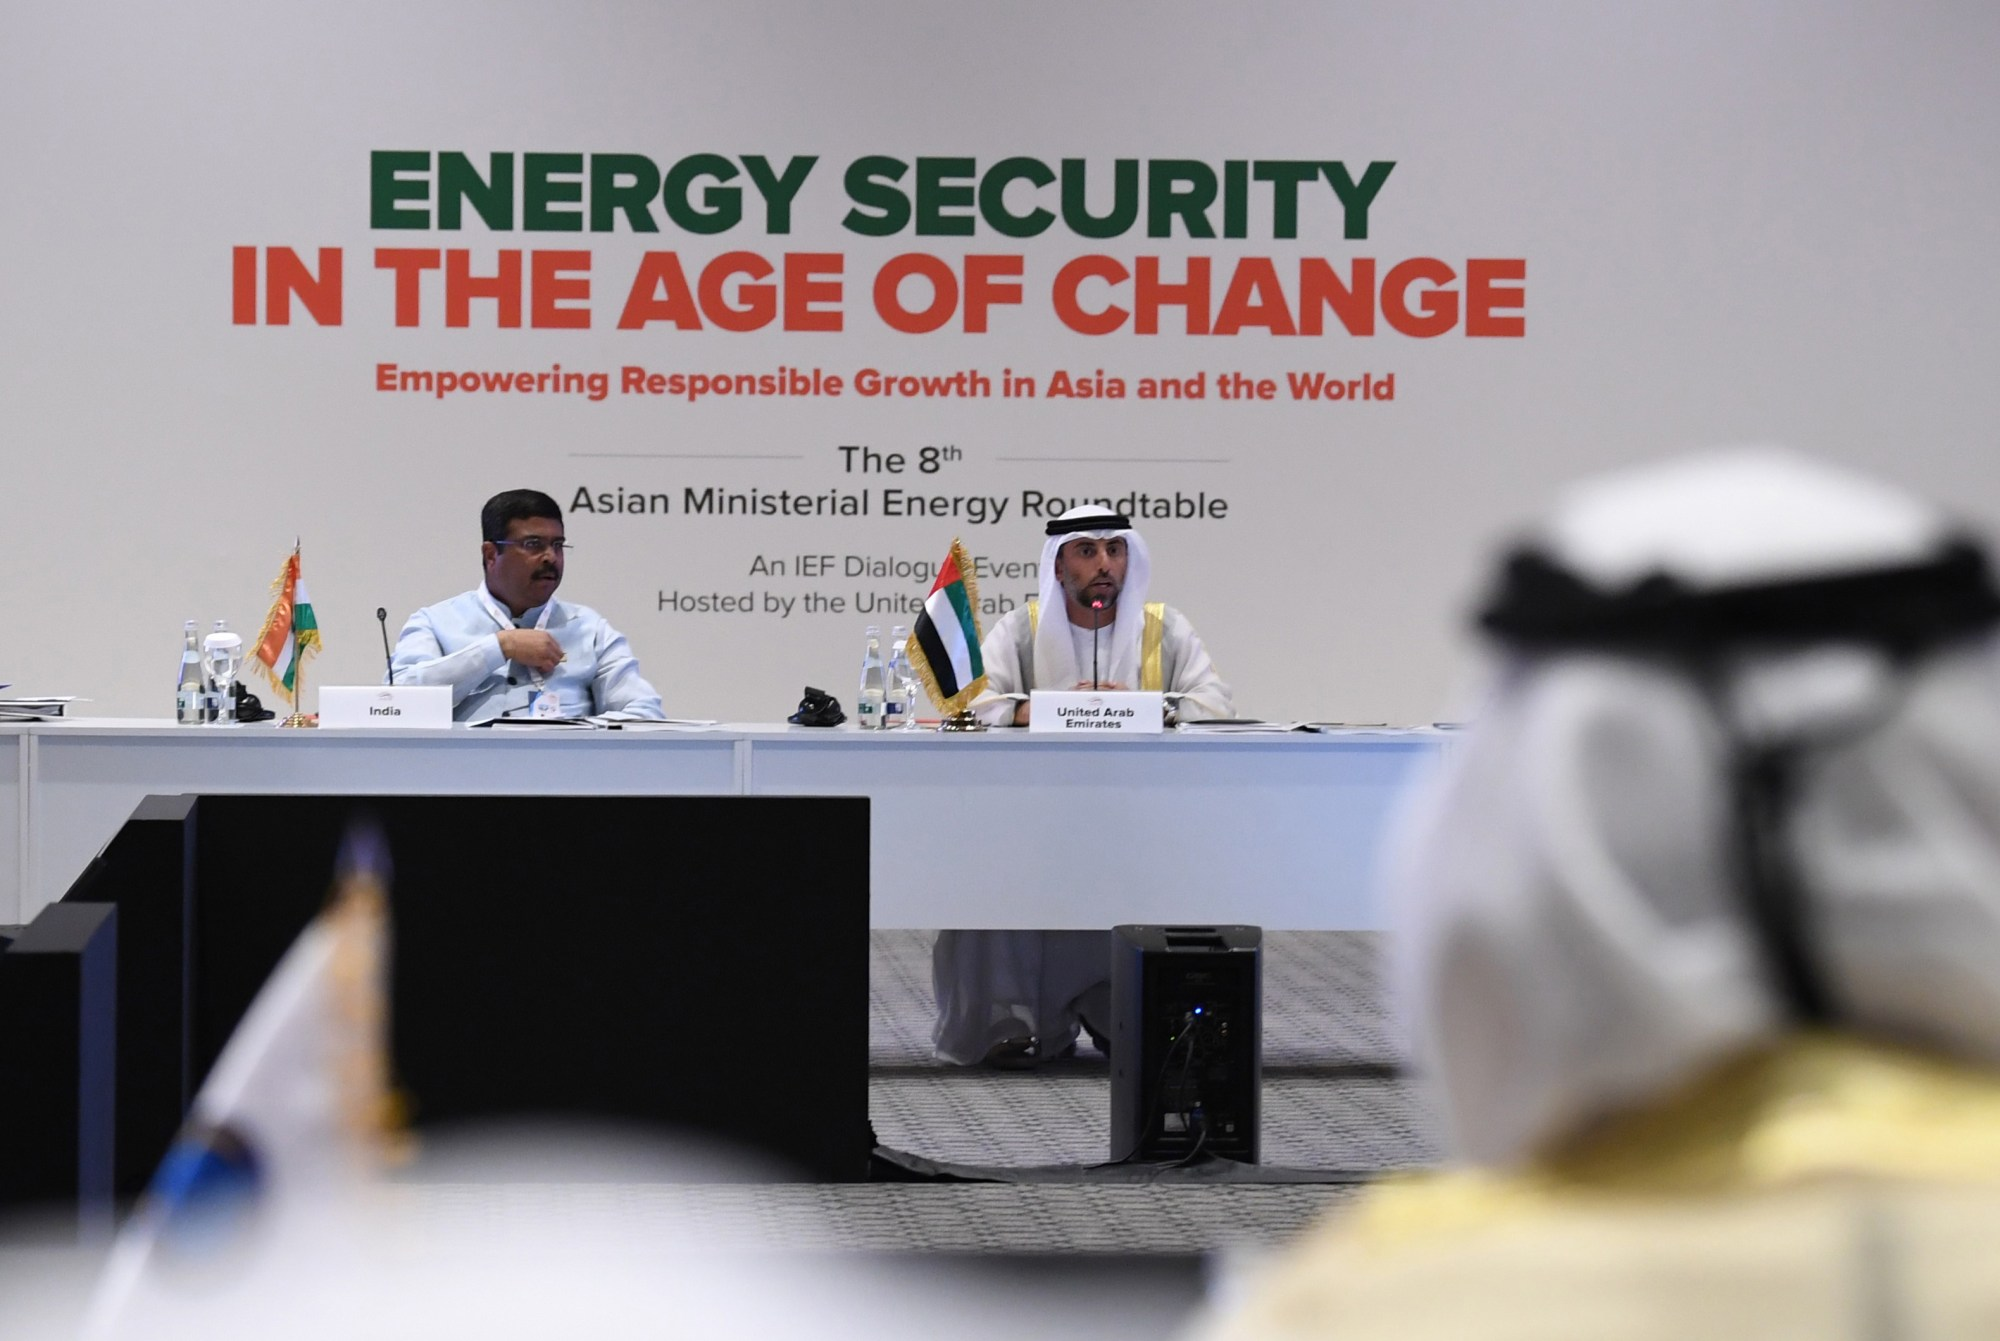 Indian Oil Minister Dharmendra Pradhan (L) listens as the United Arab Emirates' Energy Minister Suheil al-Mazrouei (C ) addreses the 24th World Energy Congress (WEC) in the Emirati capital Abu Dhabi on September 10, 2019. The OPEC petroleum exporters' cartel and key independent producers are deliberating how to halt a slide in prices that has persisted despite previous cuts and US sanctions that have squeezed supply from Iran and Venezuela. (KARIM SAHIB/AFP via Getty Images)